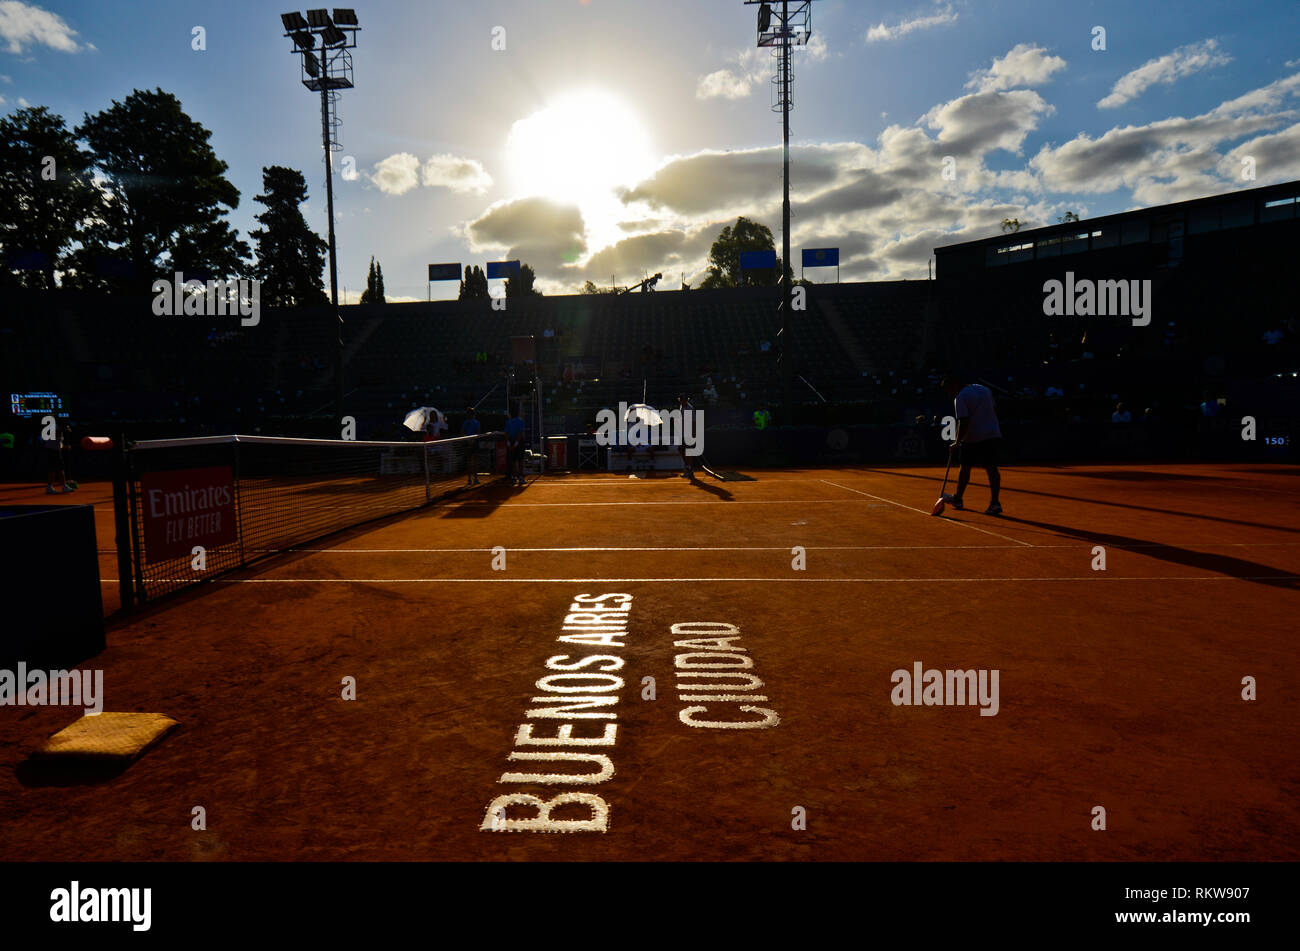 Buenos Aires Lawn Tennis Club, hosting the traditional Argentina Open, an ATP tour tournament - Stock Image